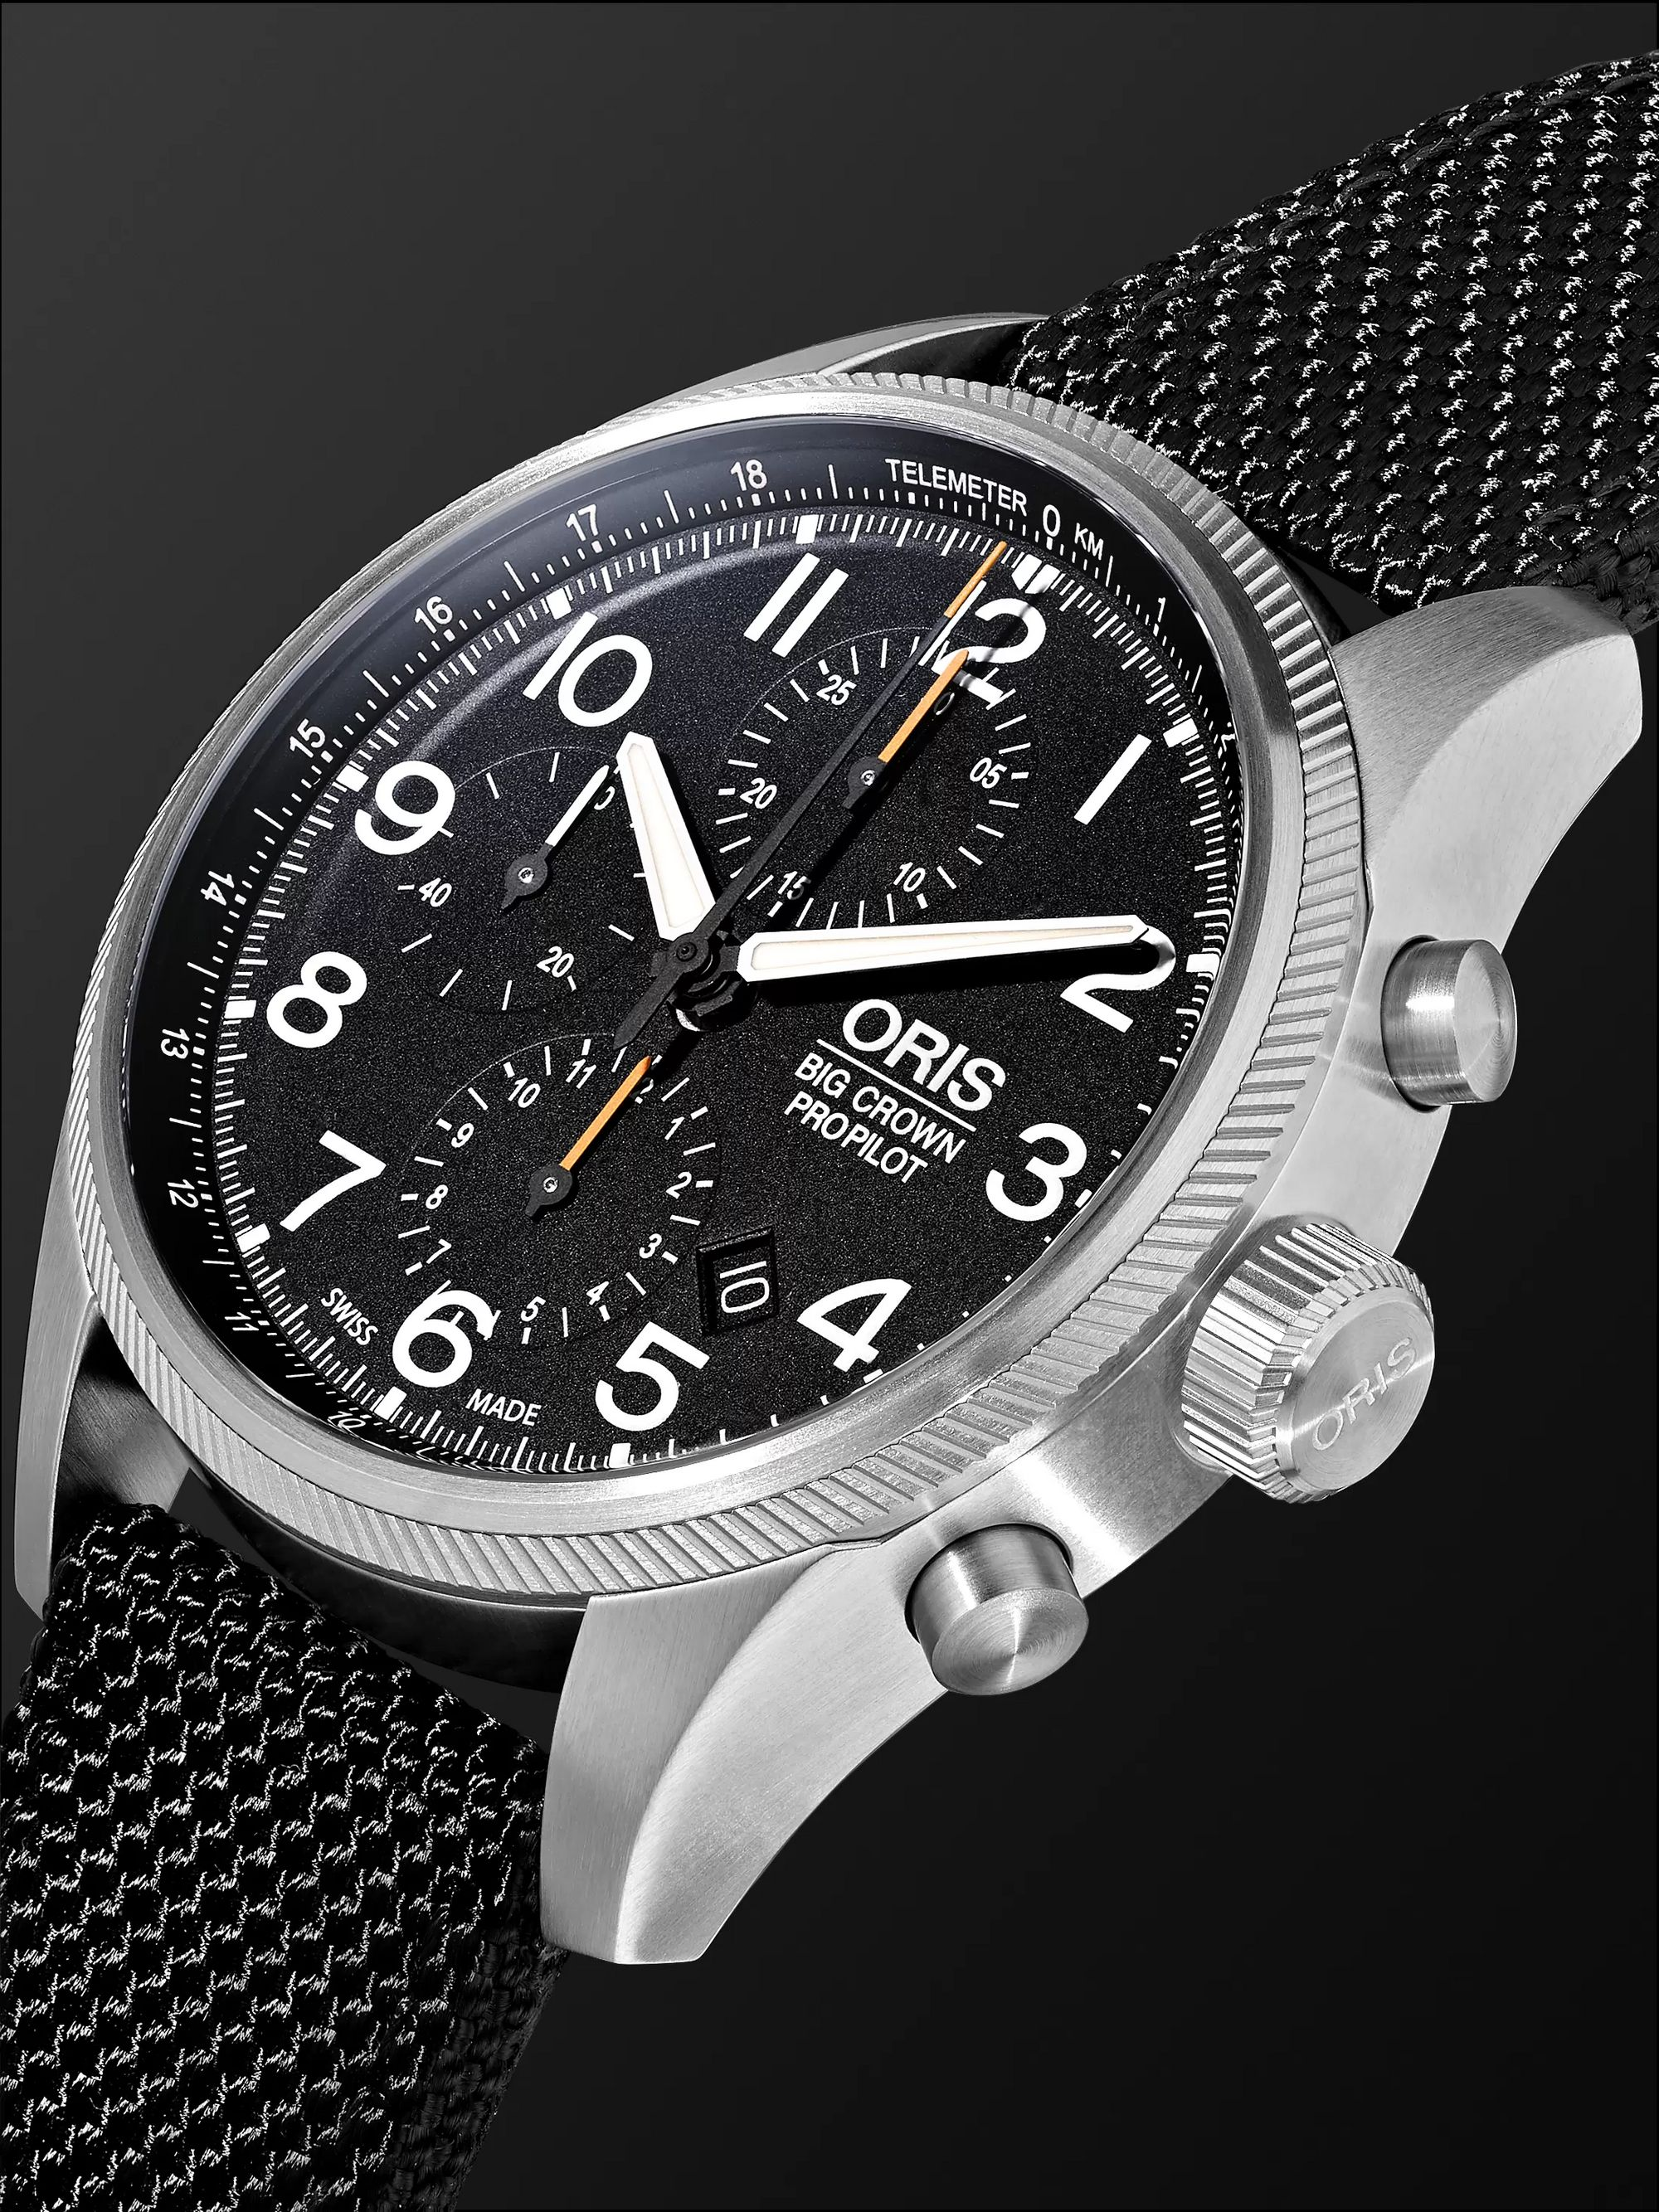 Oris Big Crown ProPilot Automatic Chronograph 44mm Stainless Steel and Nylon Watch, Ref. No. 01 774 7699 4134TS